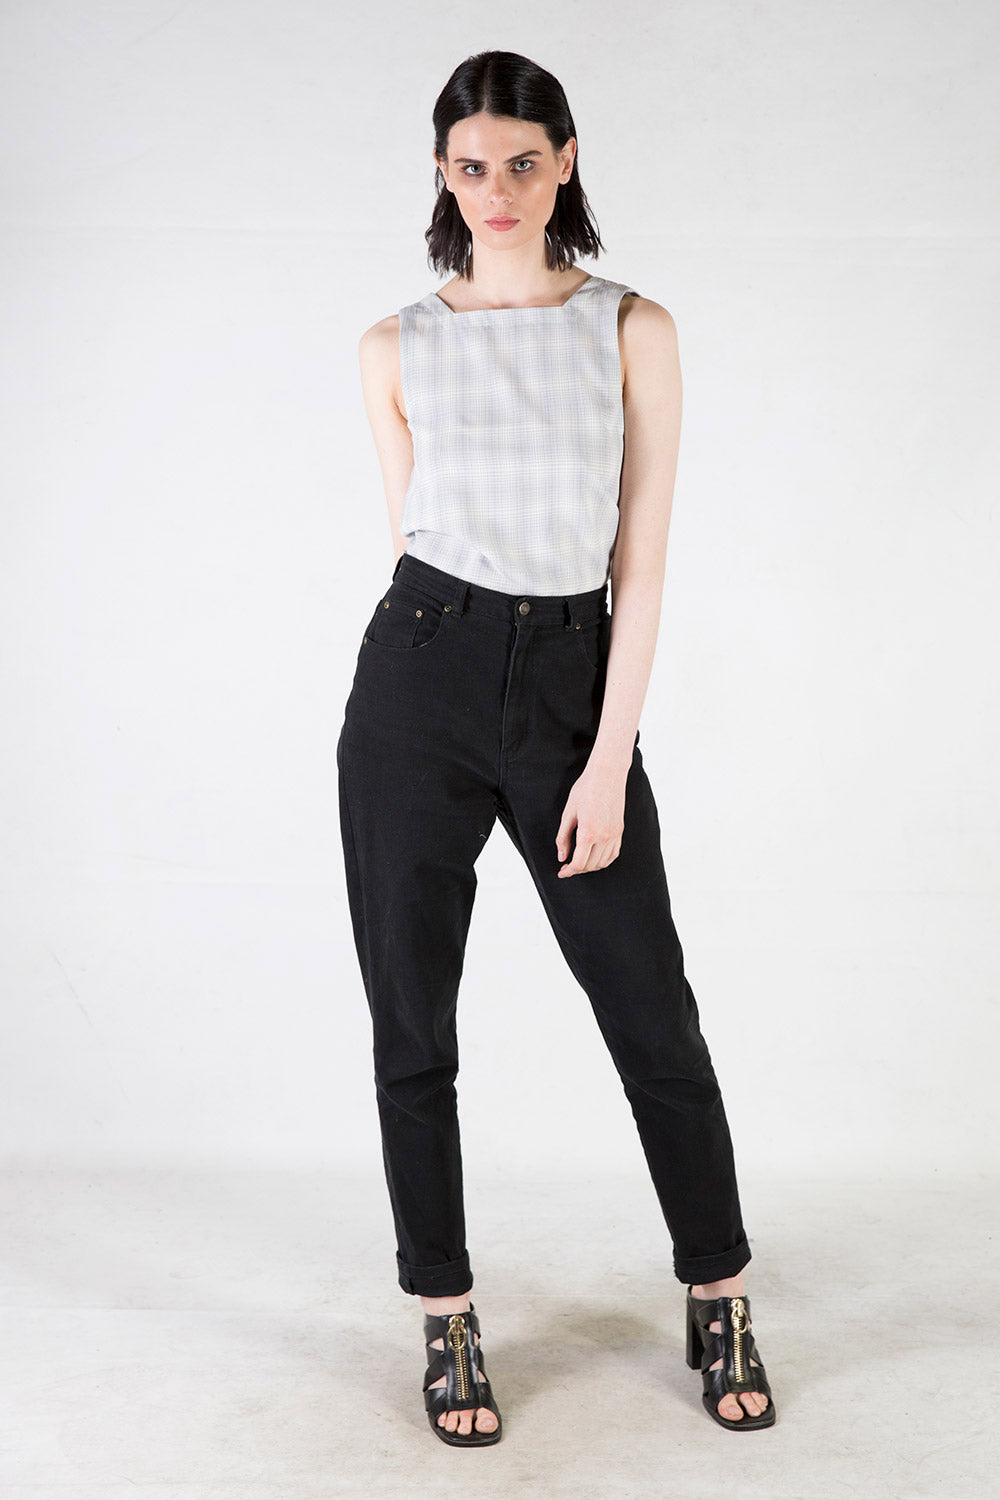 Henry Tie Top | Young + Resolute | Annah Stretton